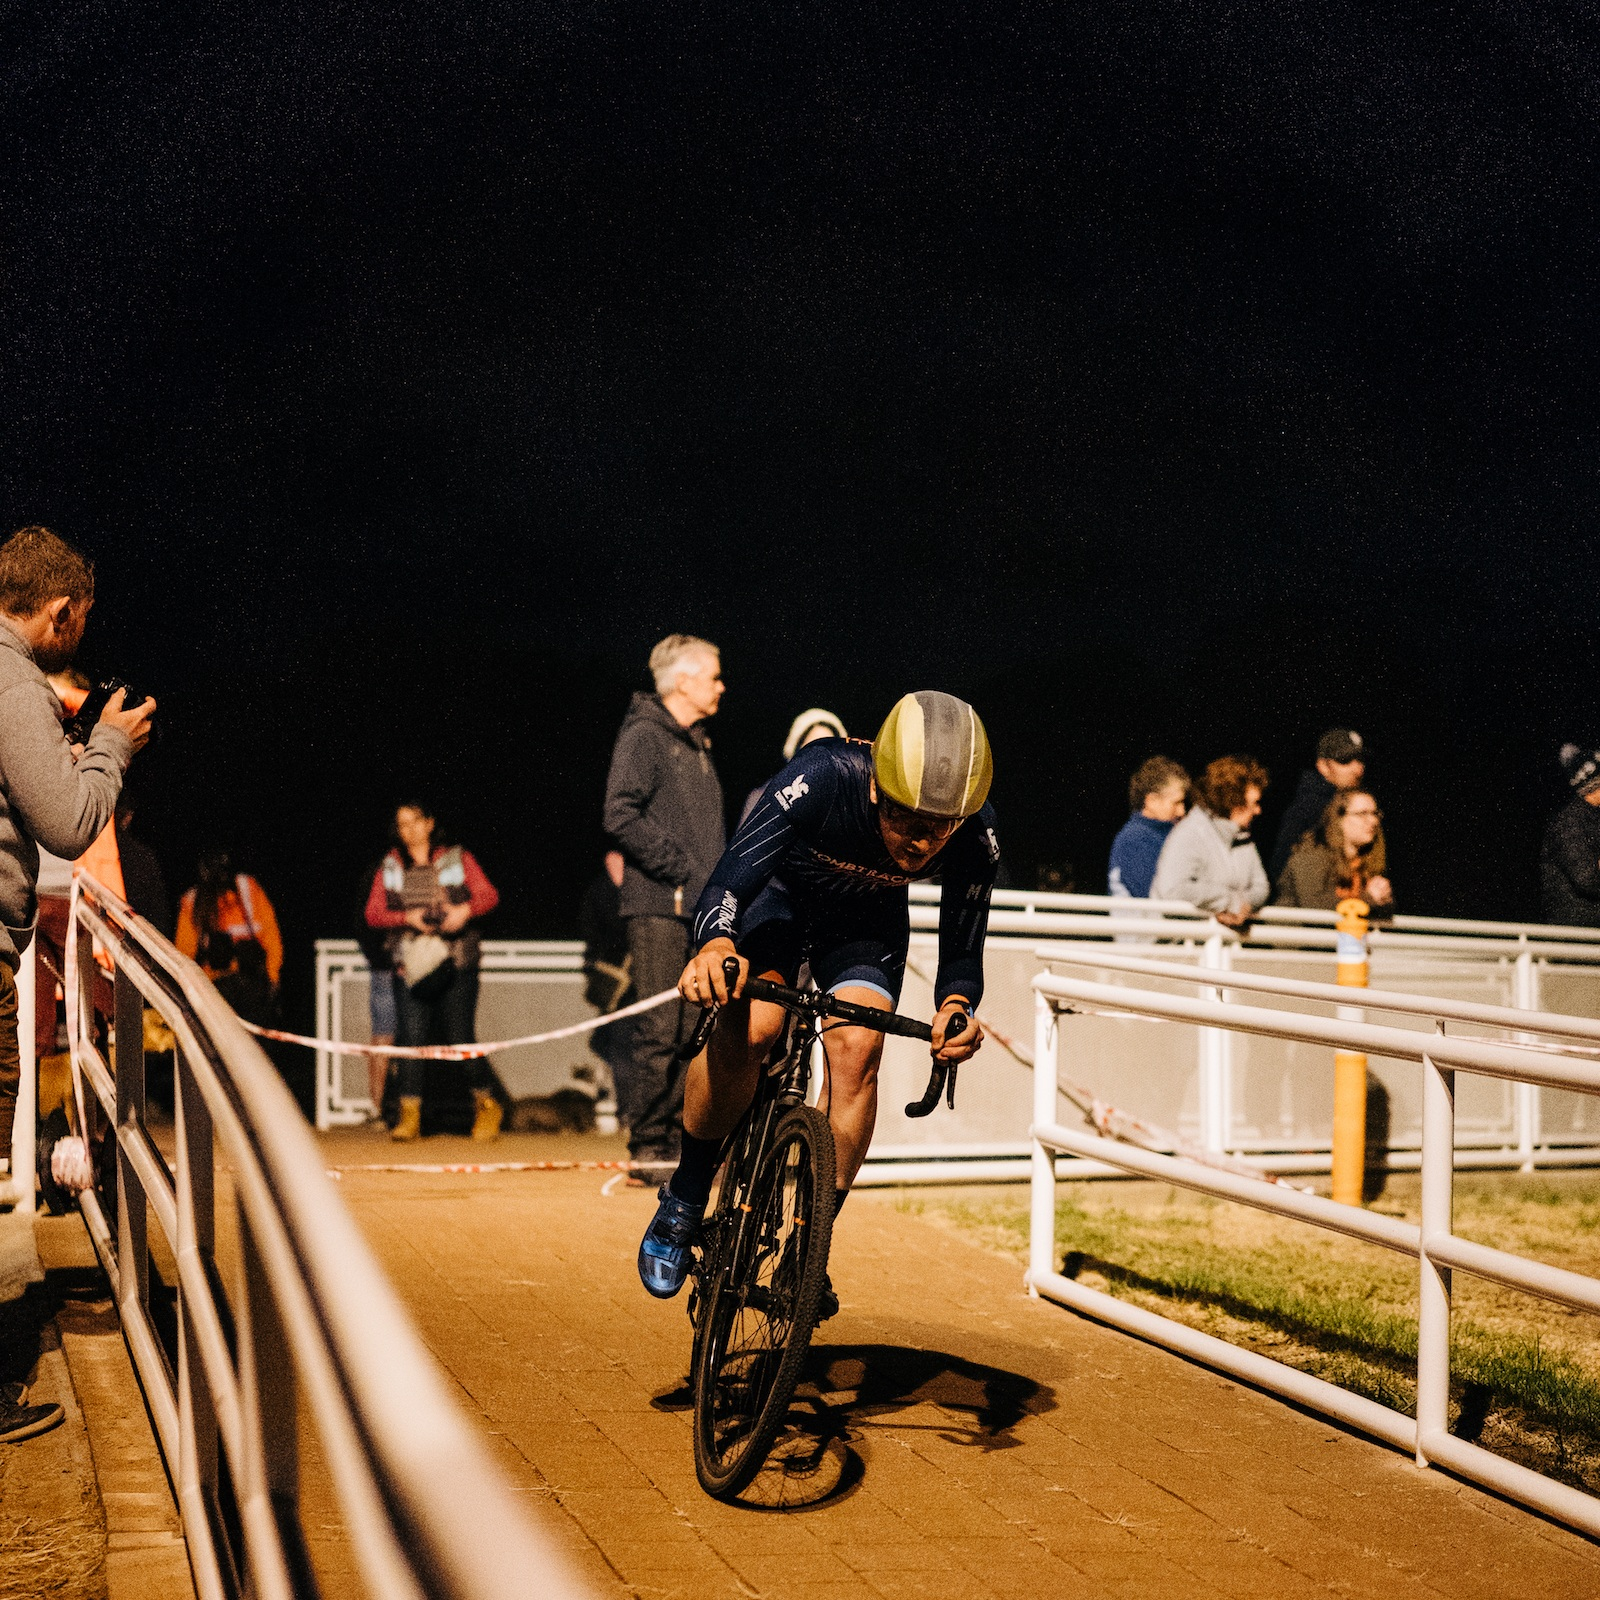 The Blind Date CX race that PACC put on at the Adelaide Superdrome was a highlight of the off-season for us. Photo c/o Andy Rogers